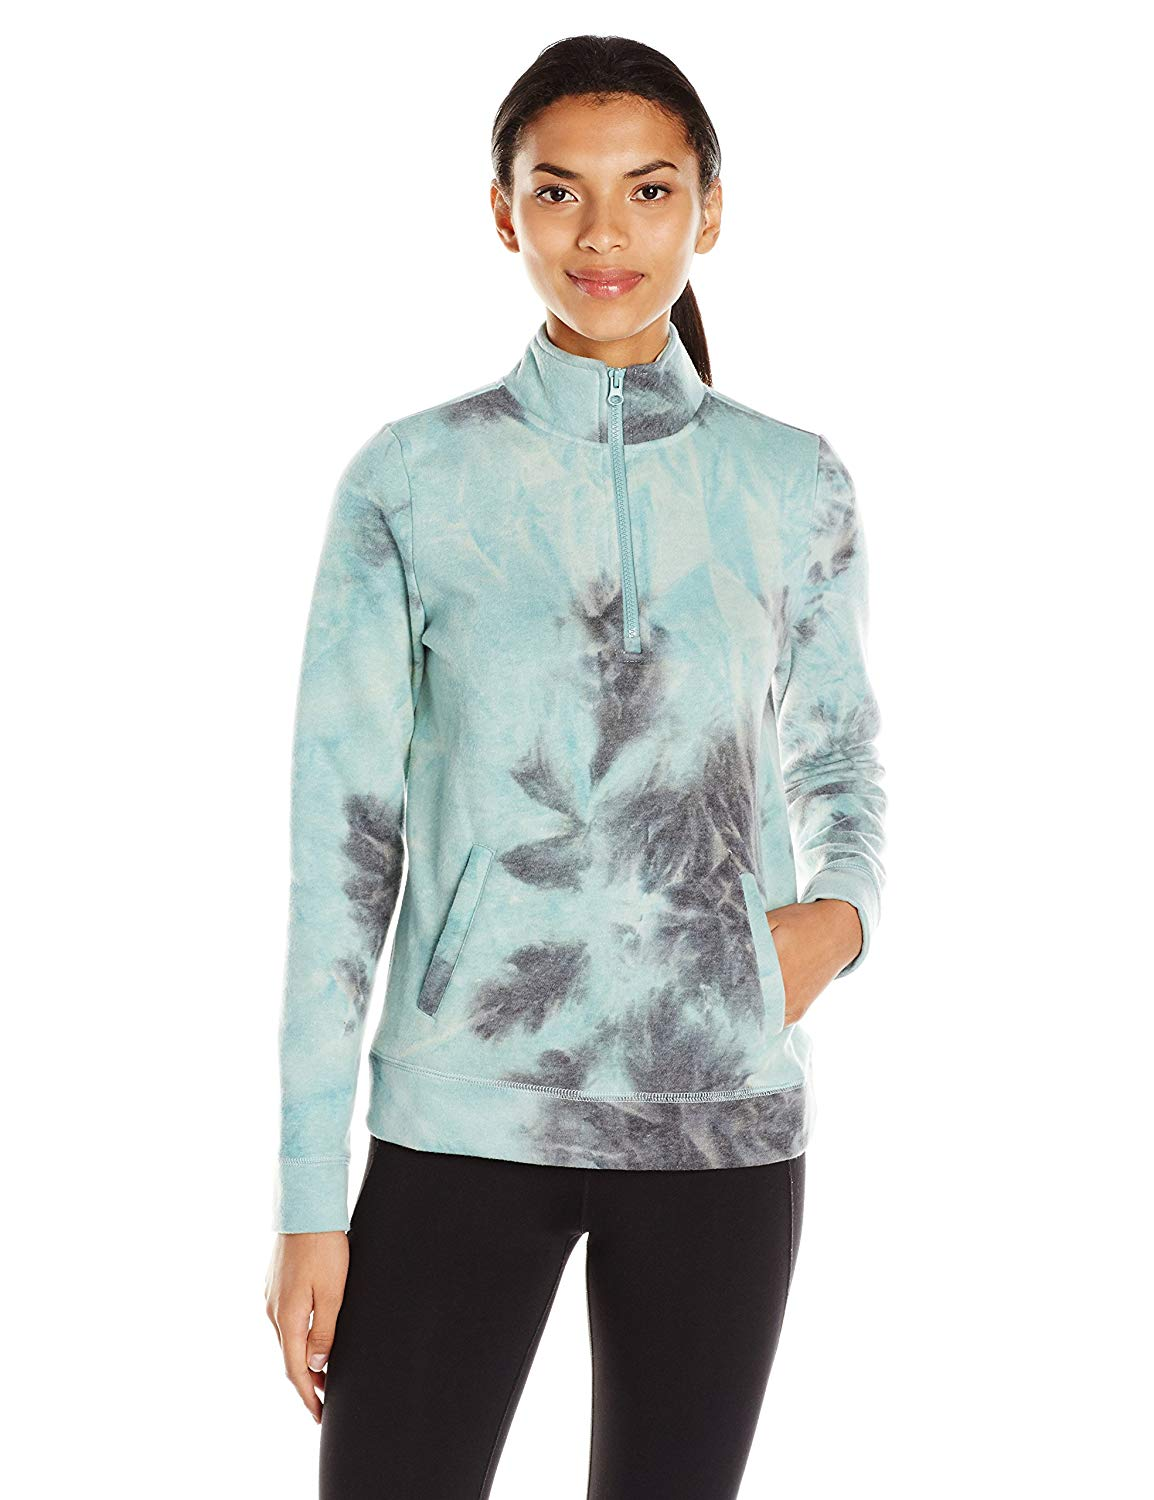 The Warm Up by Jessica Simpson Women's Tie Dye Fleece Pullover with Branded Graphic